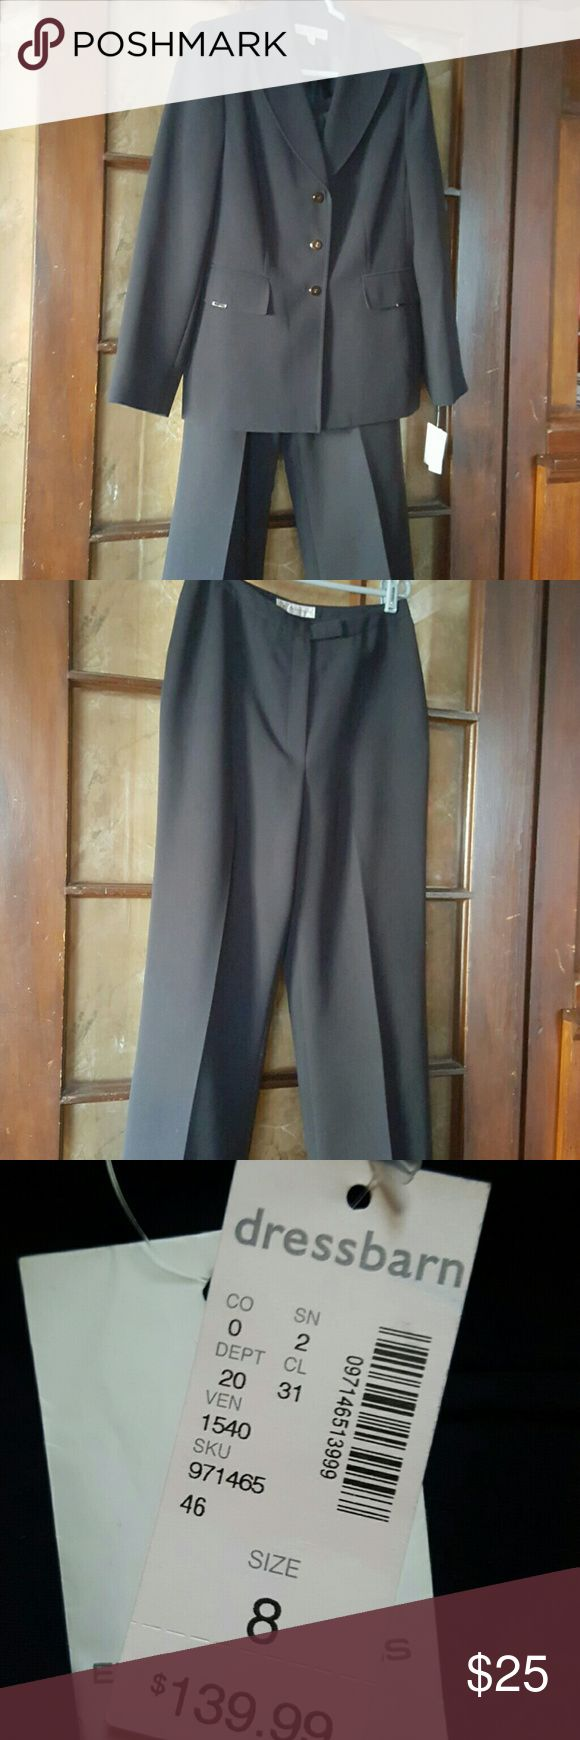 Womens suit dark navy Dark Navy blue linned pants brand new Dressbarn Pants